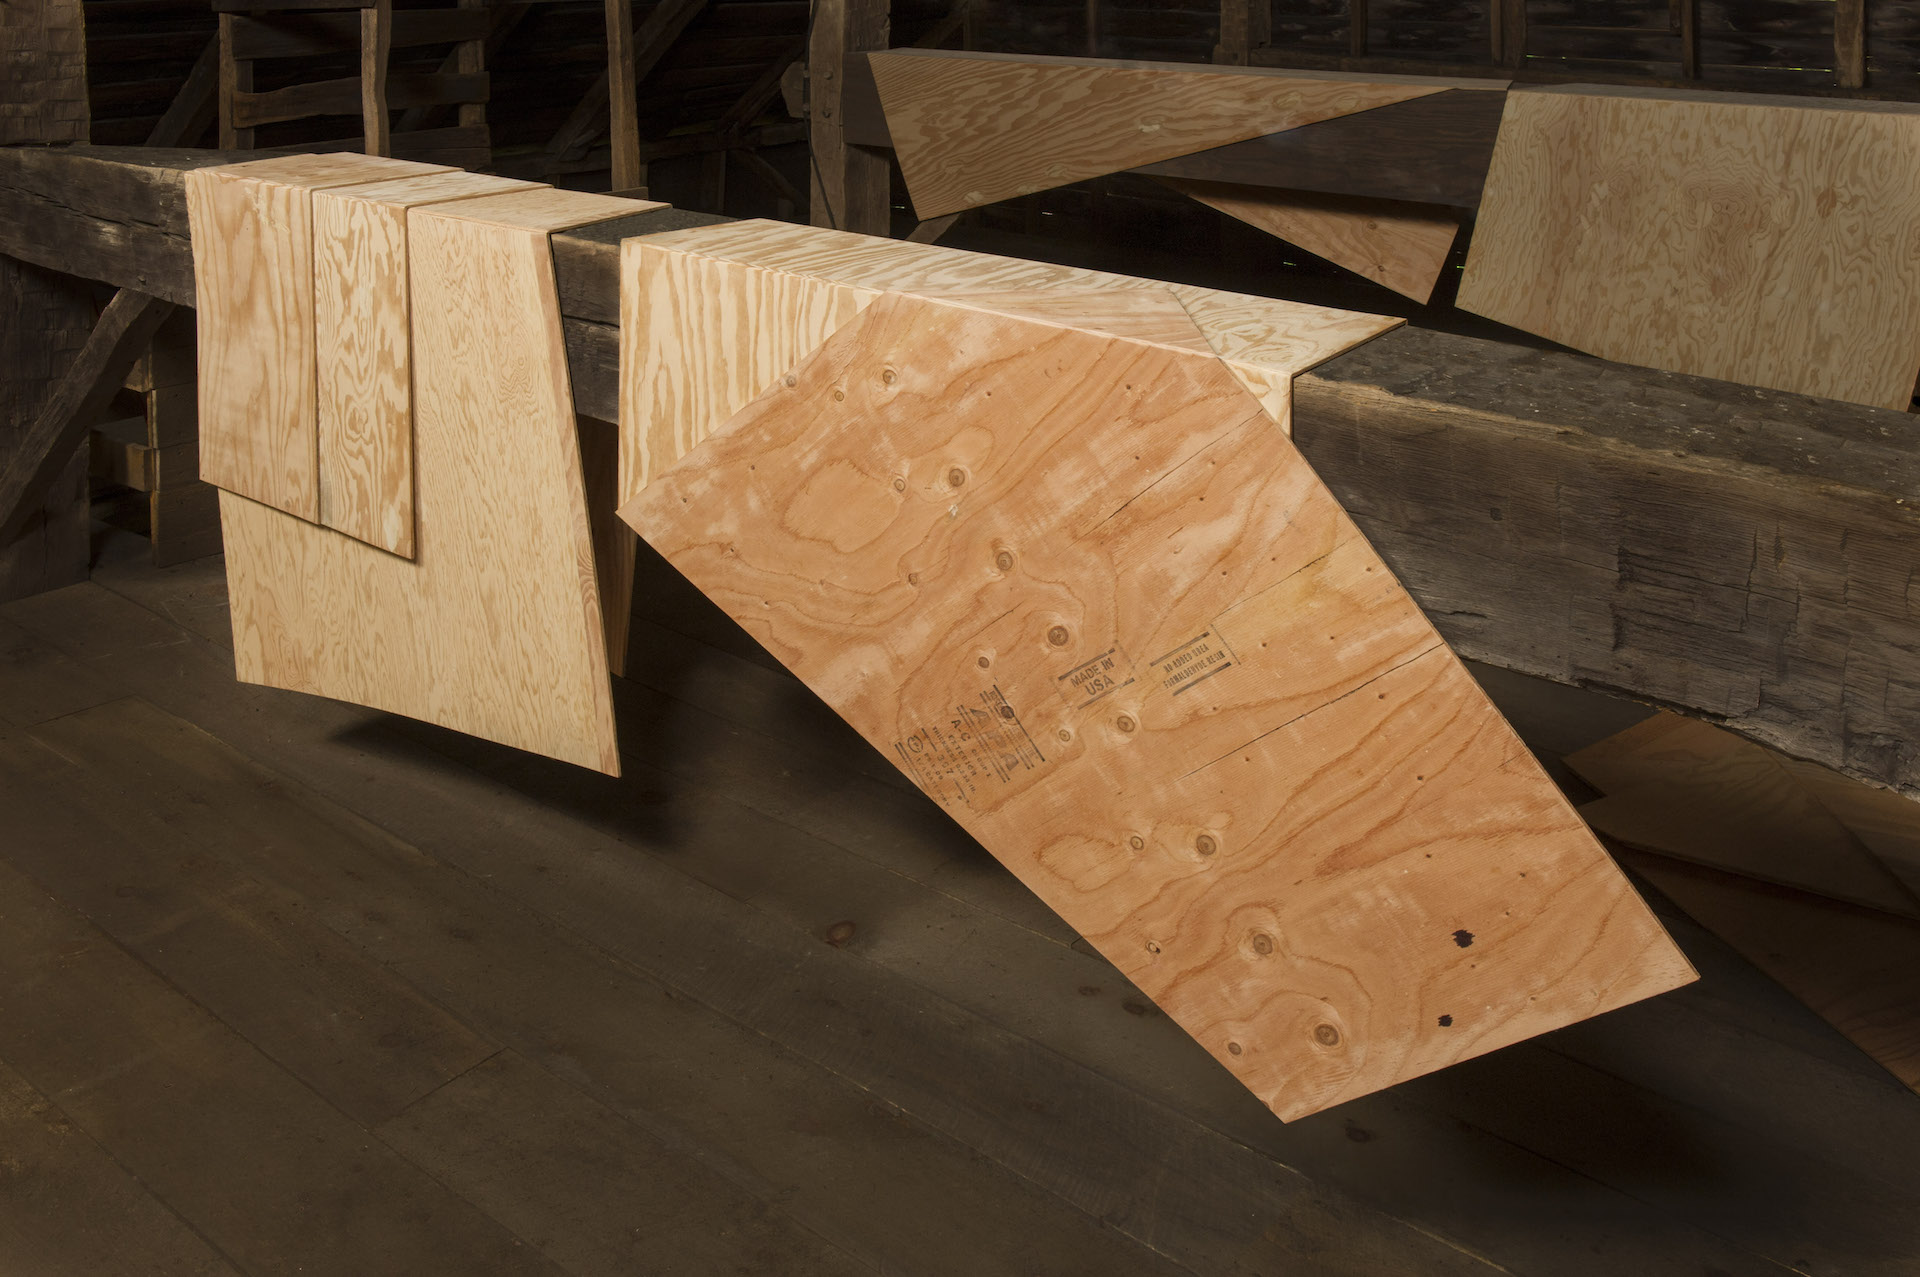 Folded Plywood 28 and 29